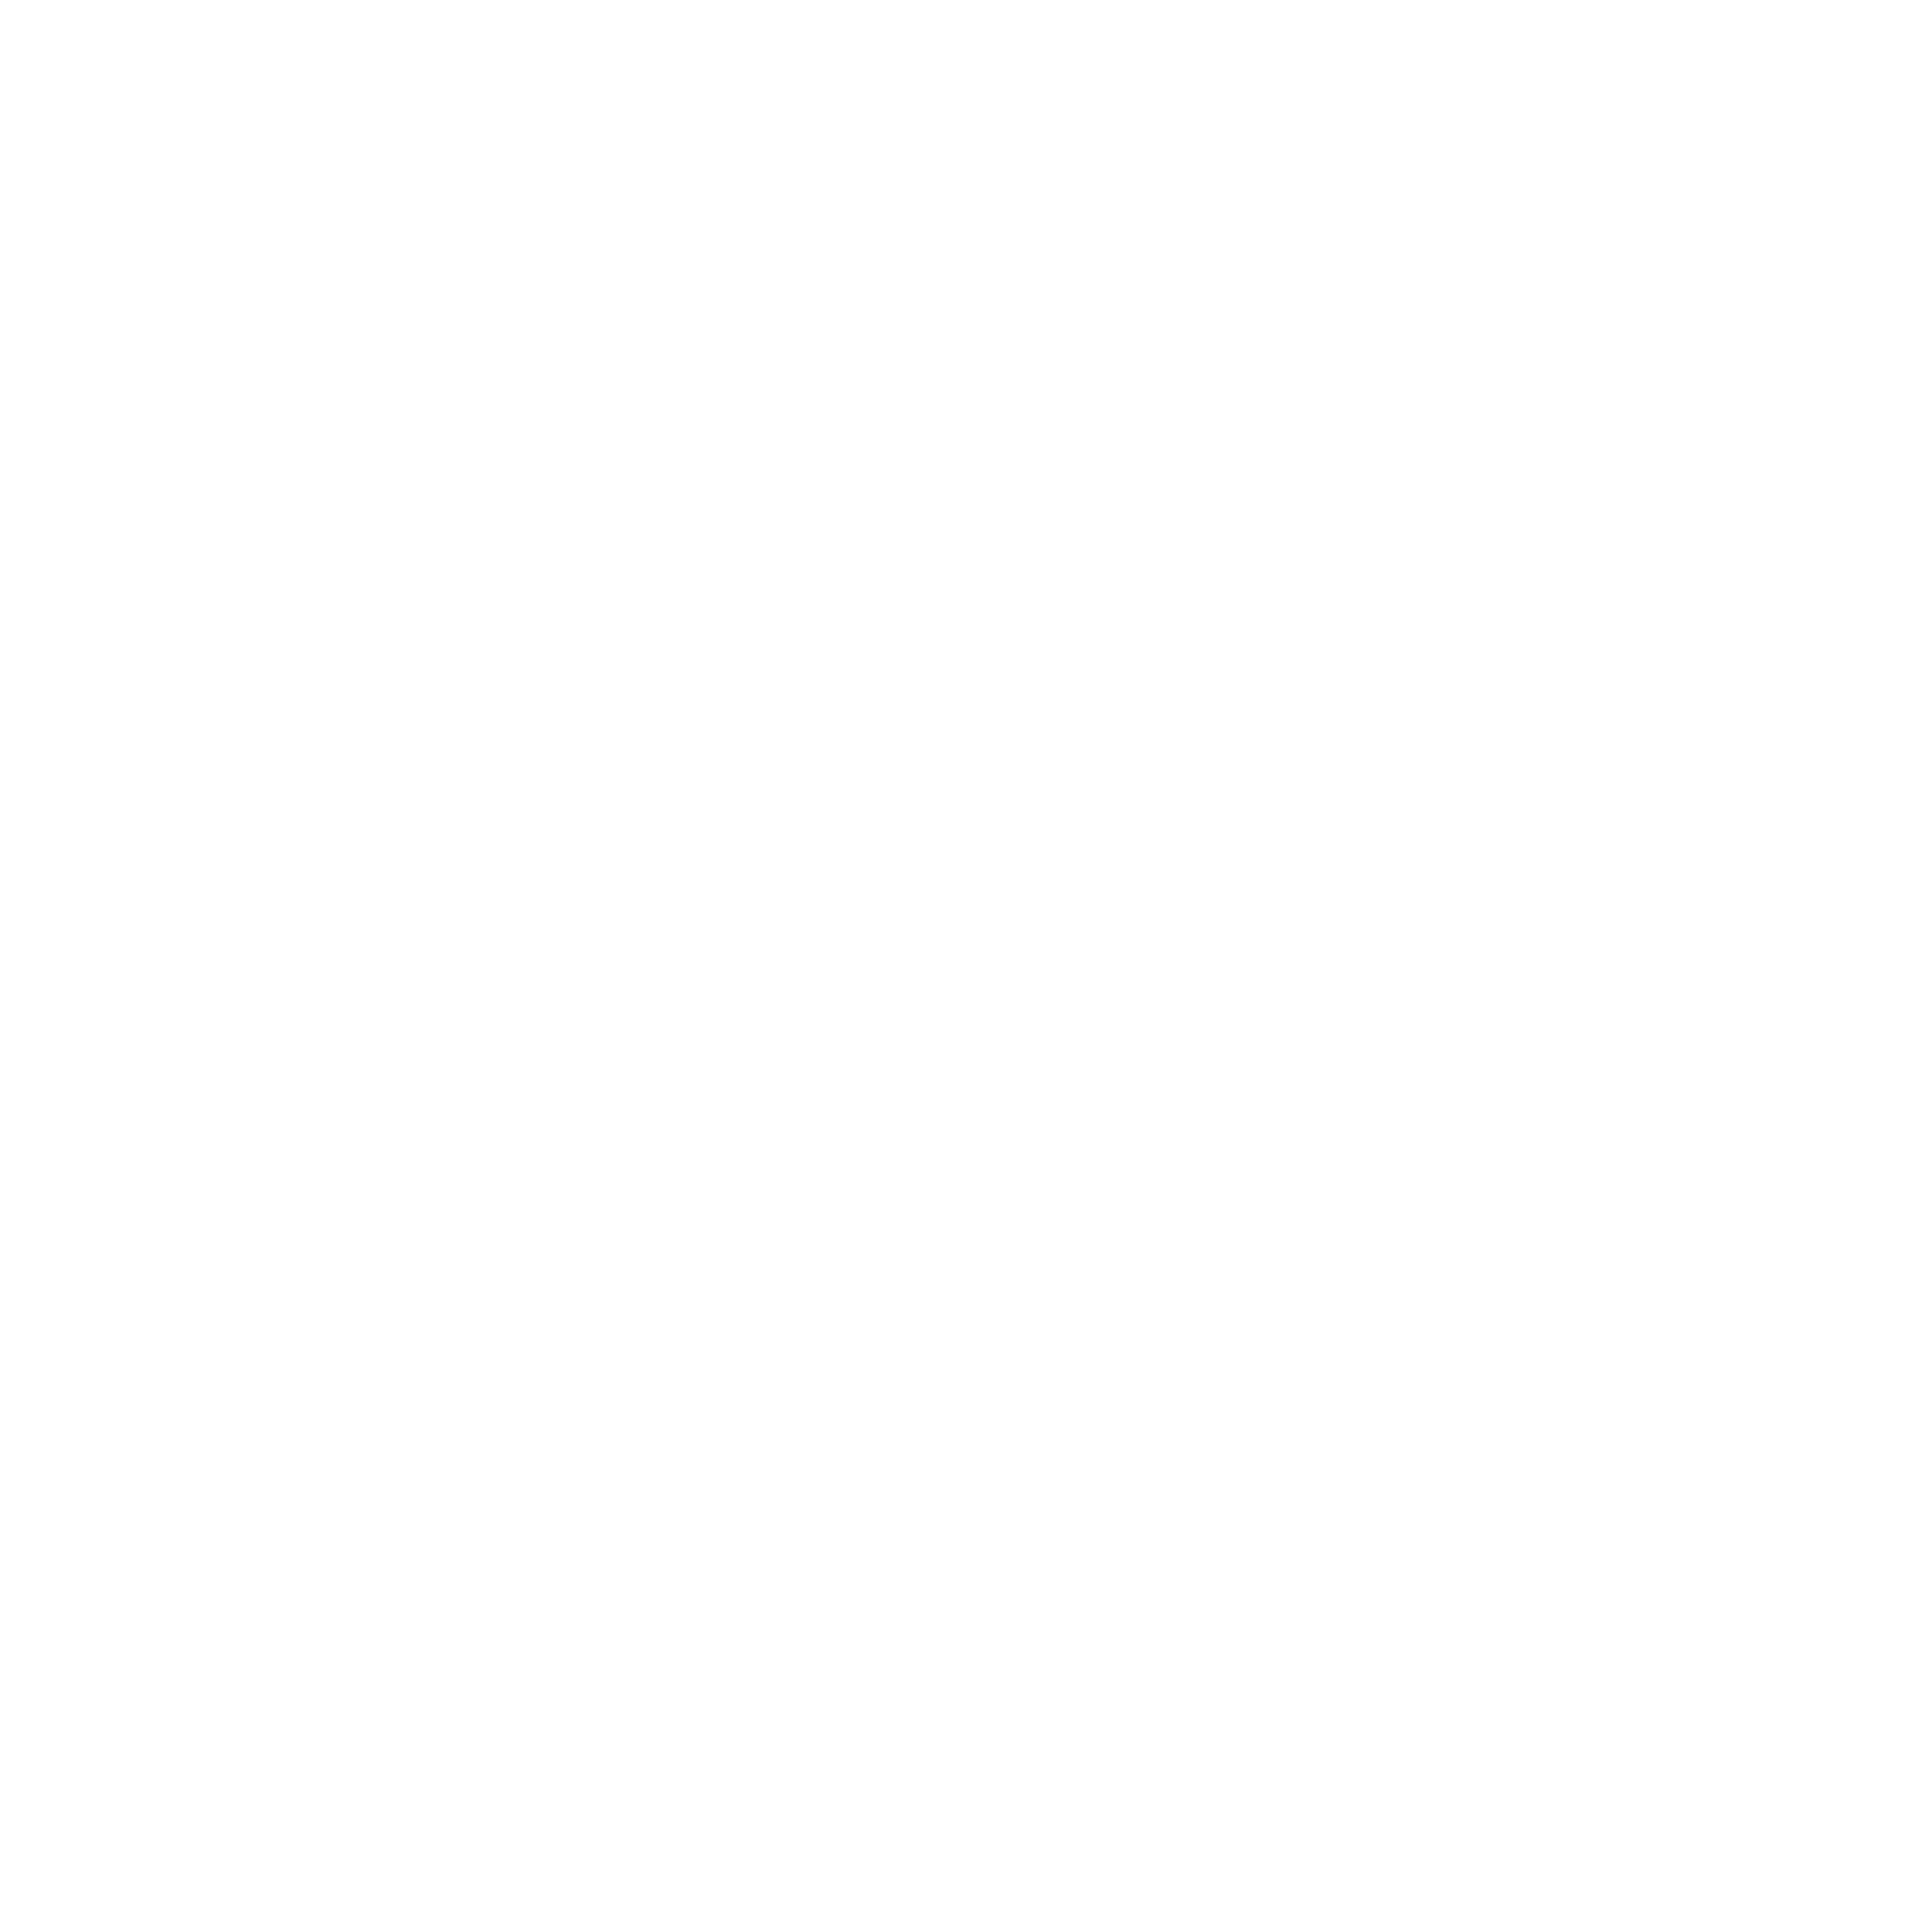 facebook f logo png white wwwimgkidcom the image kid